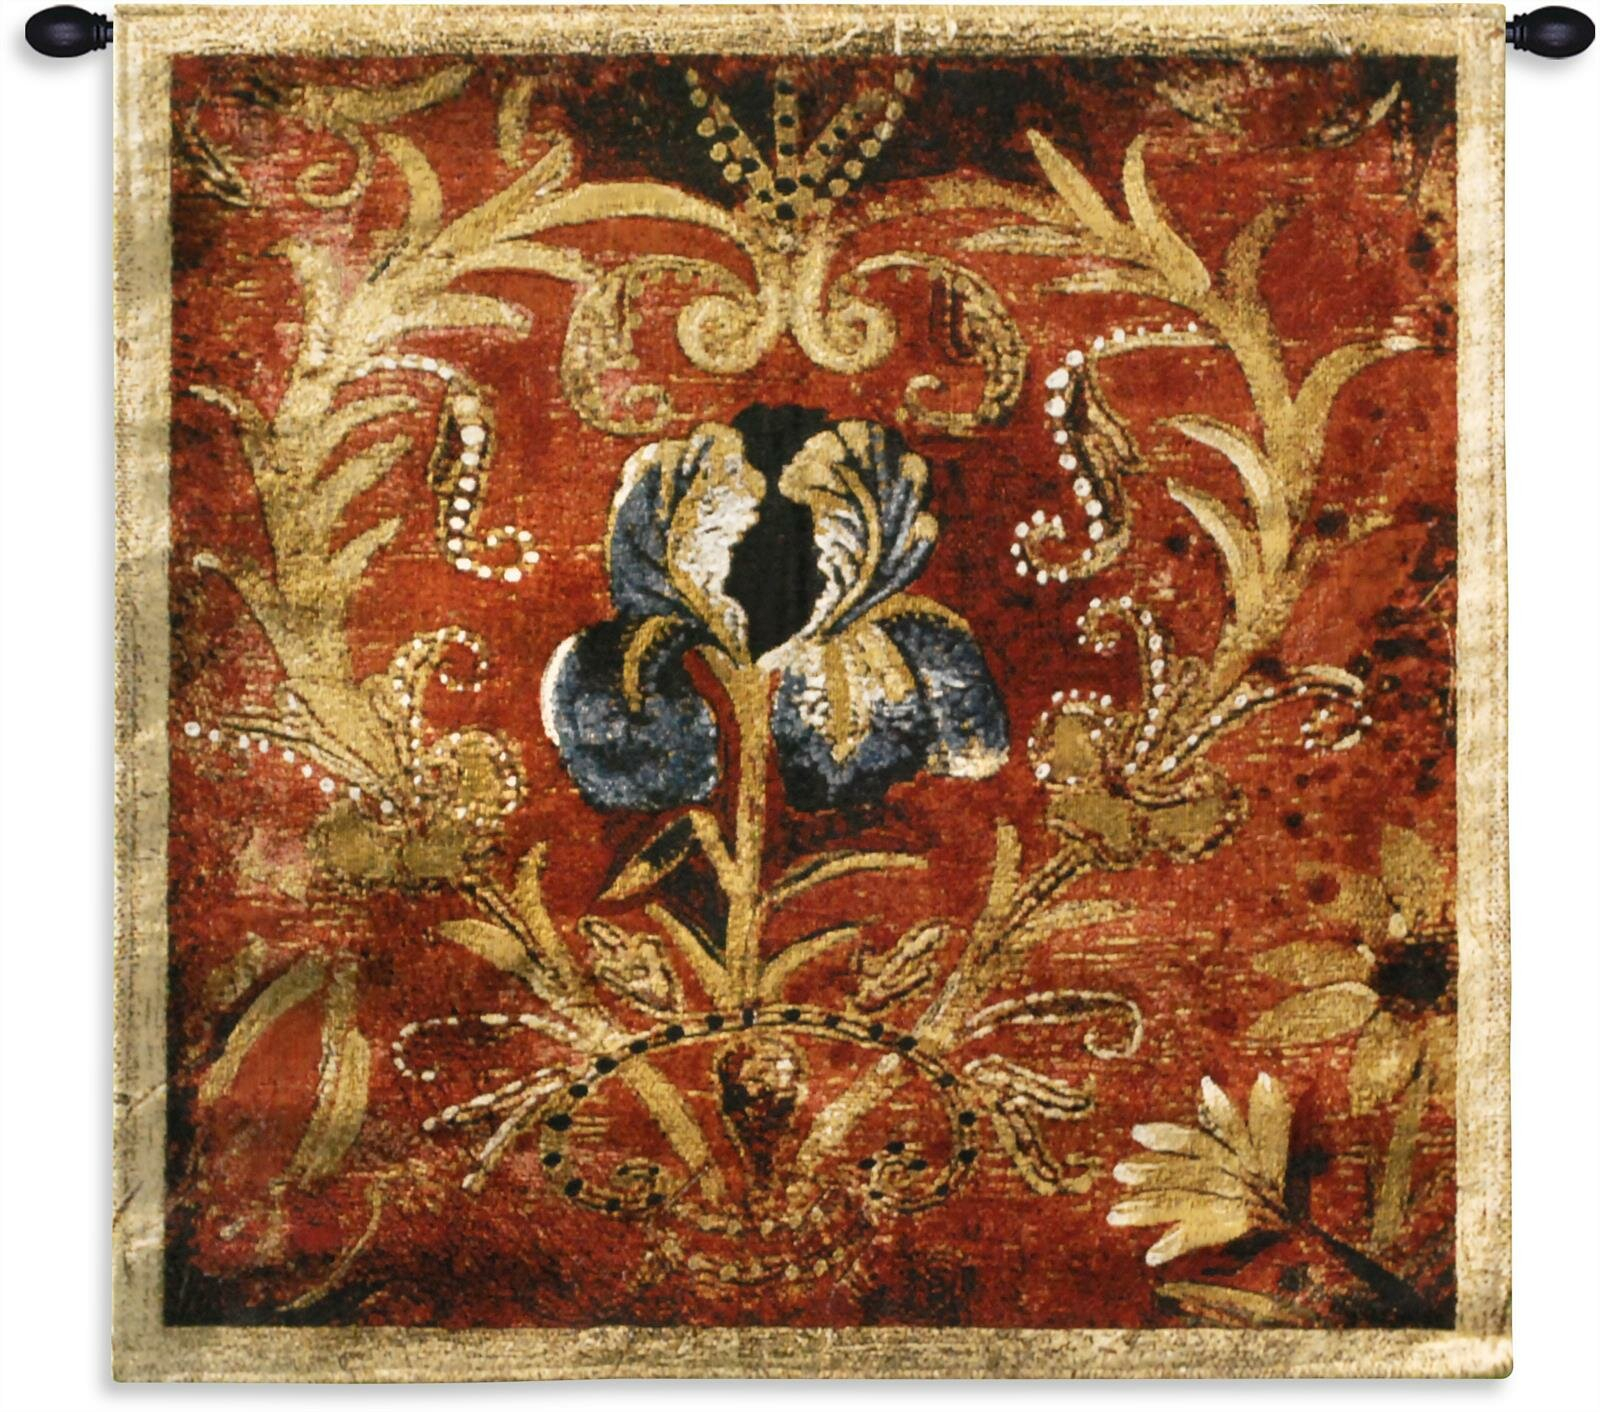 Bel Tesoro Iv Wall Tapestry Within Most Recent Blended Fabric Bellagio Scalinata Wall Hangings (View 12 of 20)